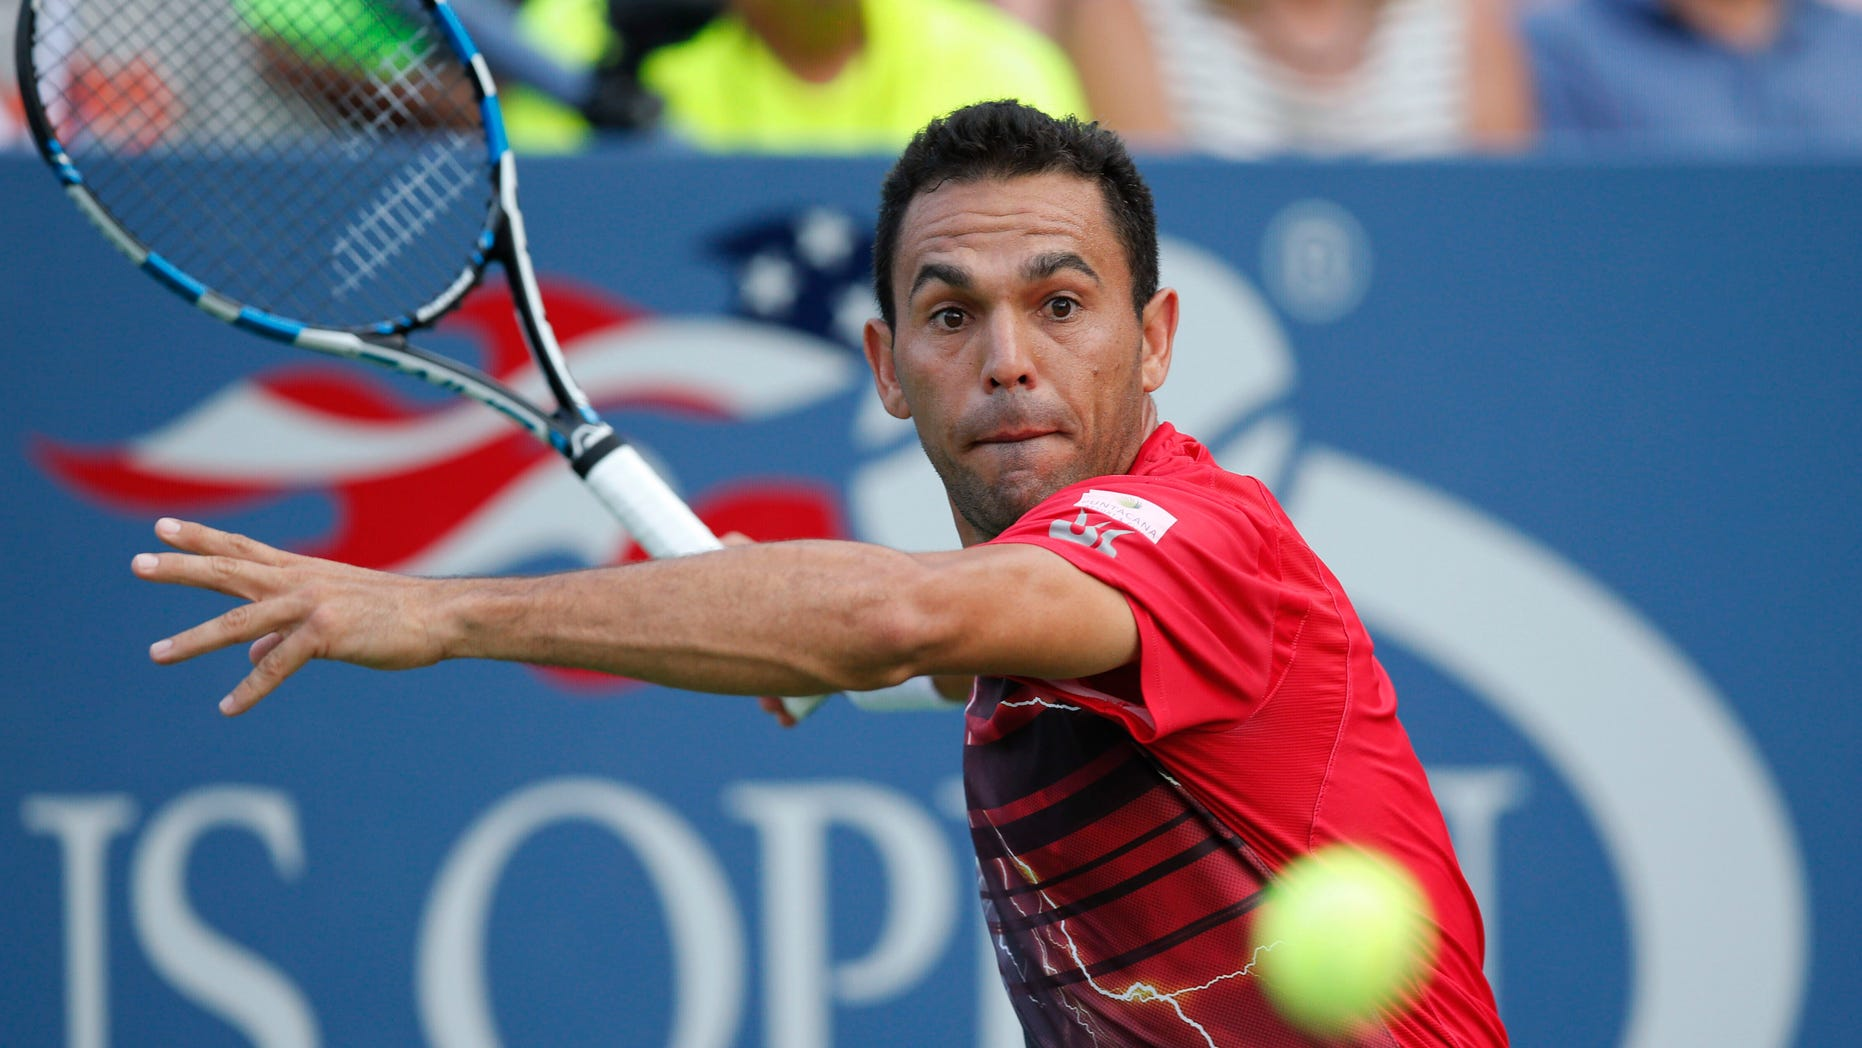 Victor Estrella Burgos, of the Dominican Republic, returns the ball during his first-round match against Jack Sock, of the United States, at the U.S. Open tennis tournament in New York, Tuesday, Sept. 1, 2015. (AP Photo/Kathy Willens)